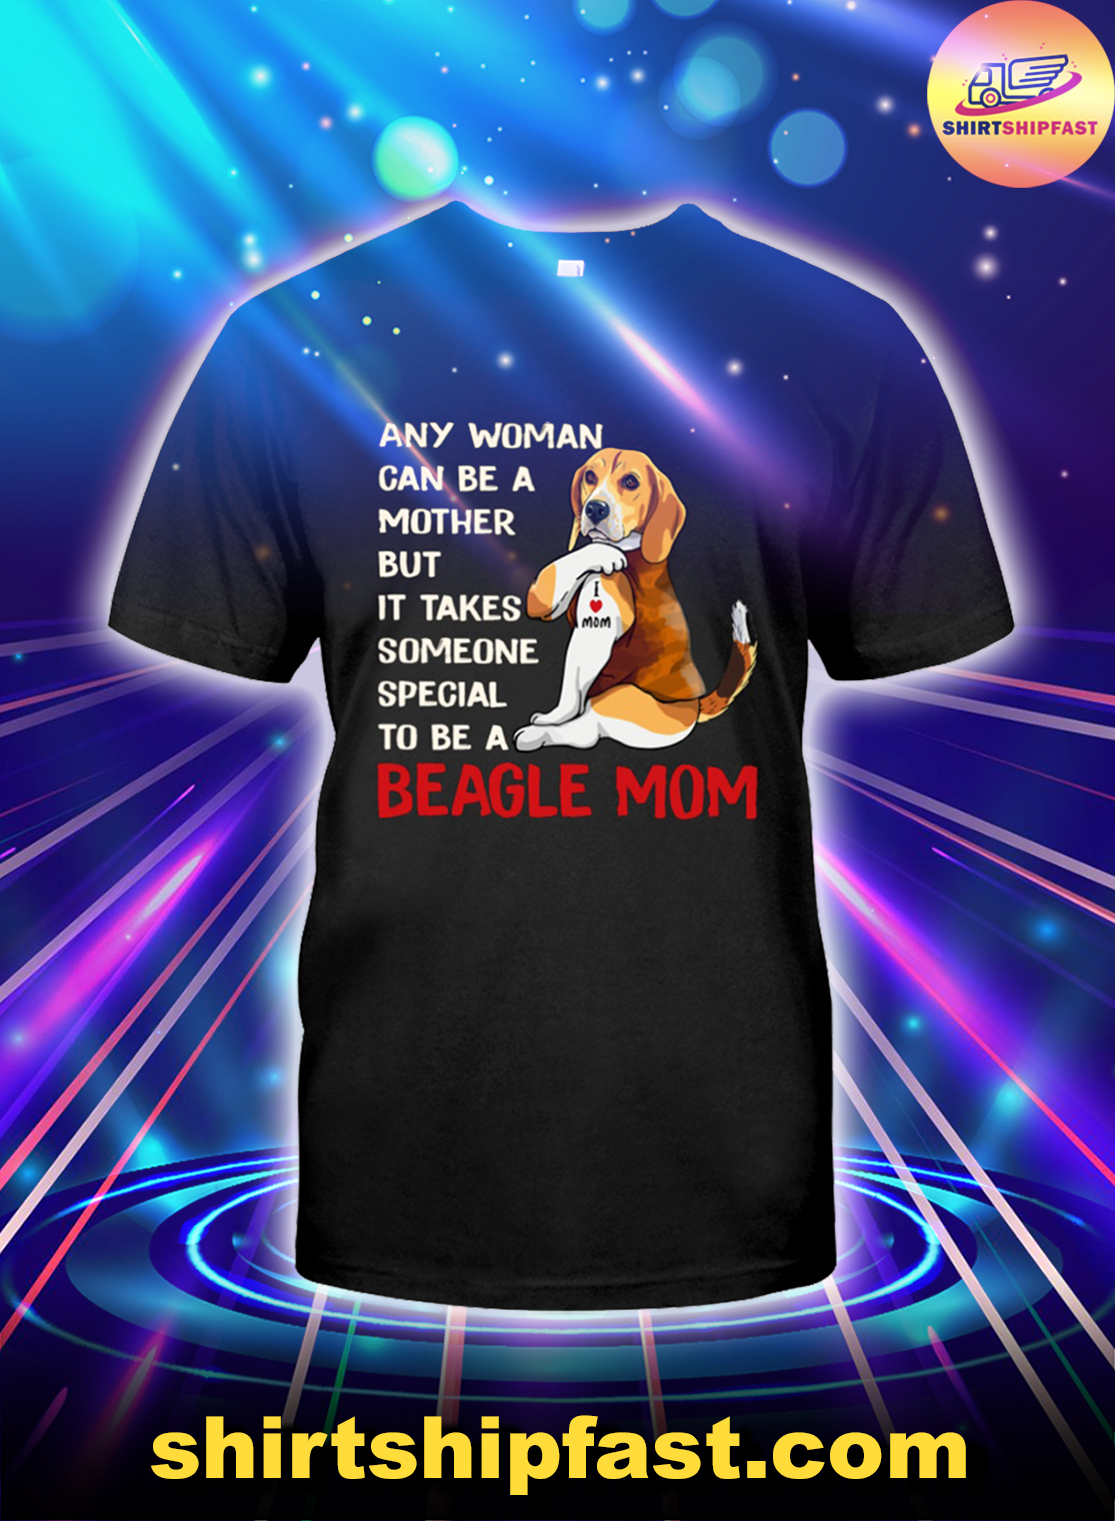 Any woman can be a mother but it takes someone special to be a beagle mom shirt